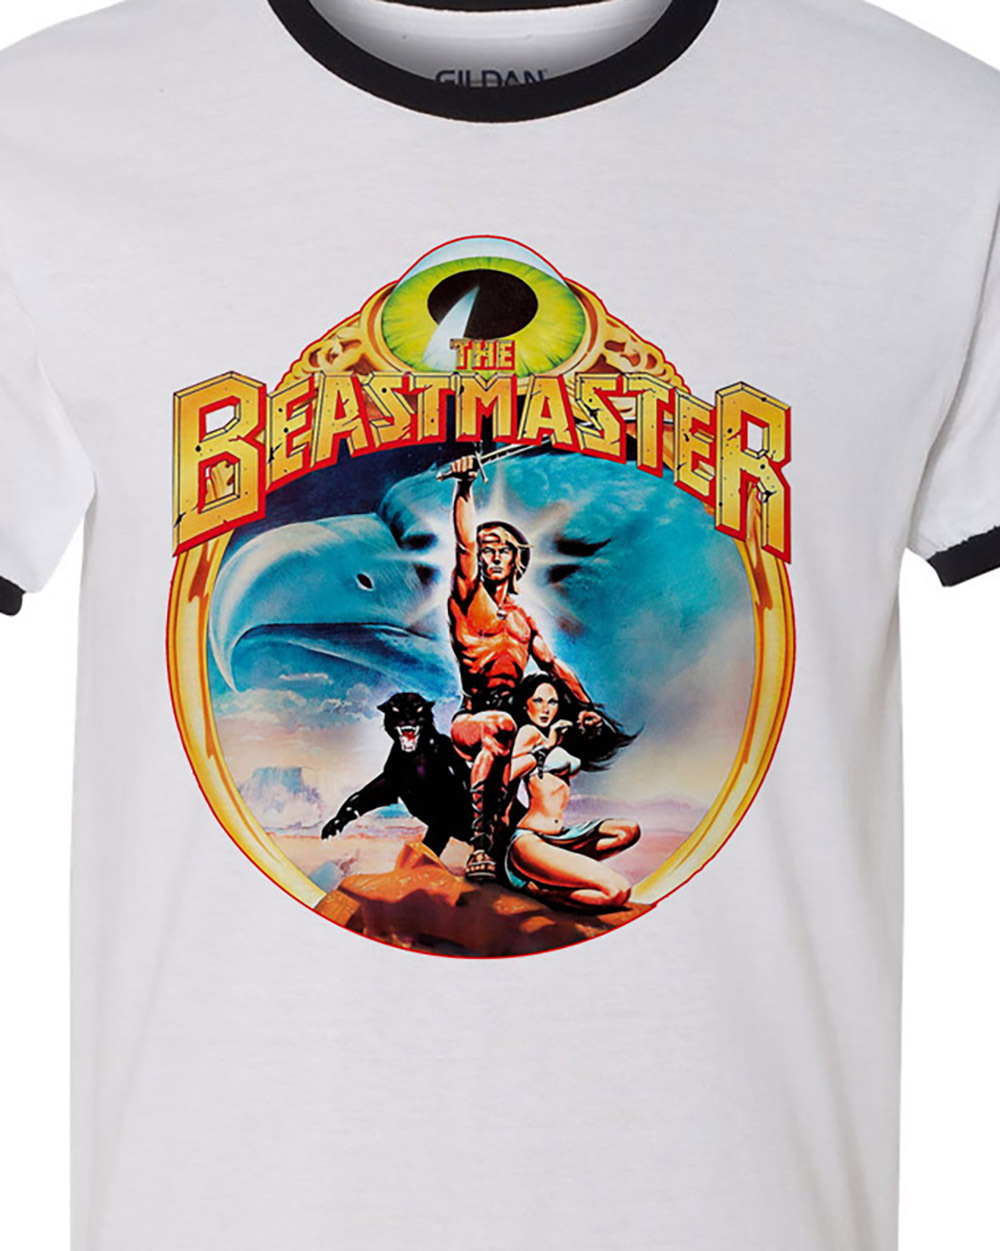 The beastmaster retro vintage 80 s sci fi t shirt for sale online store ringer tee